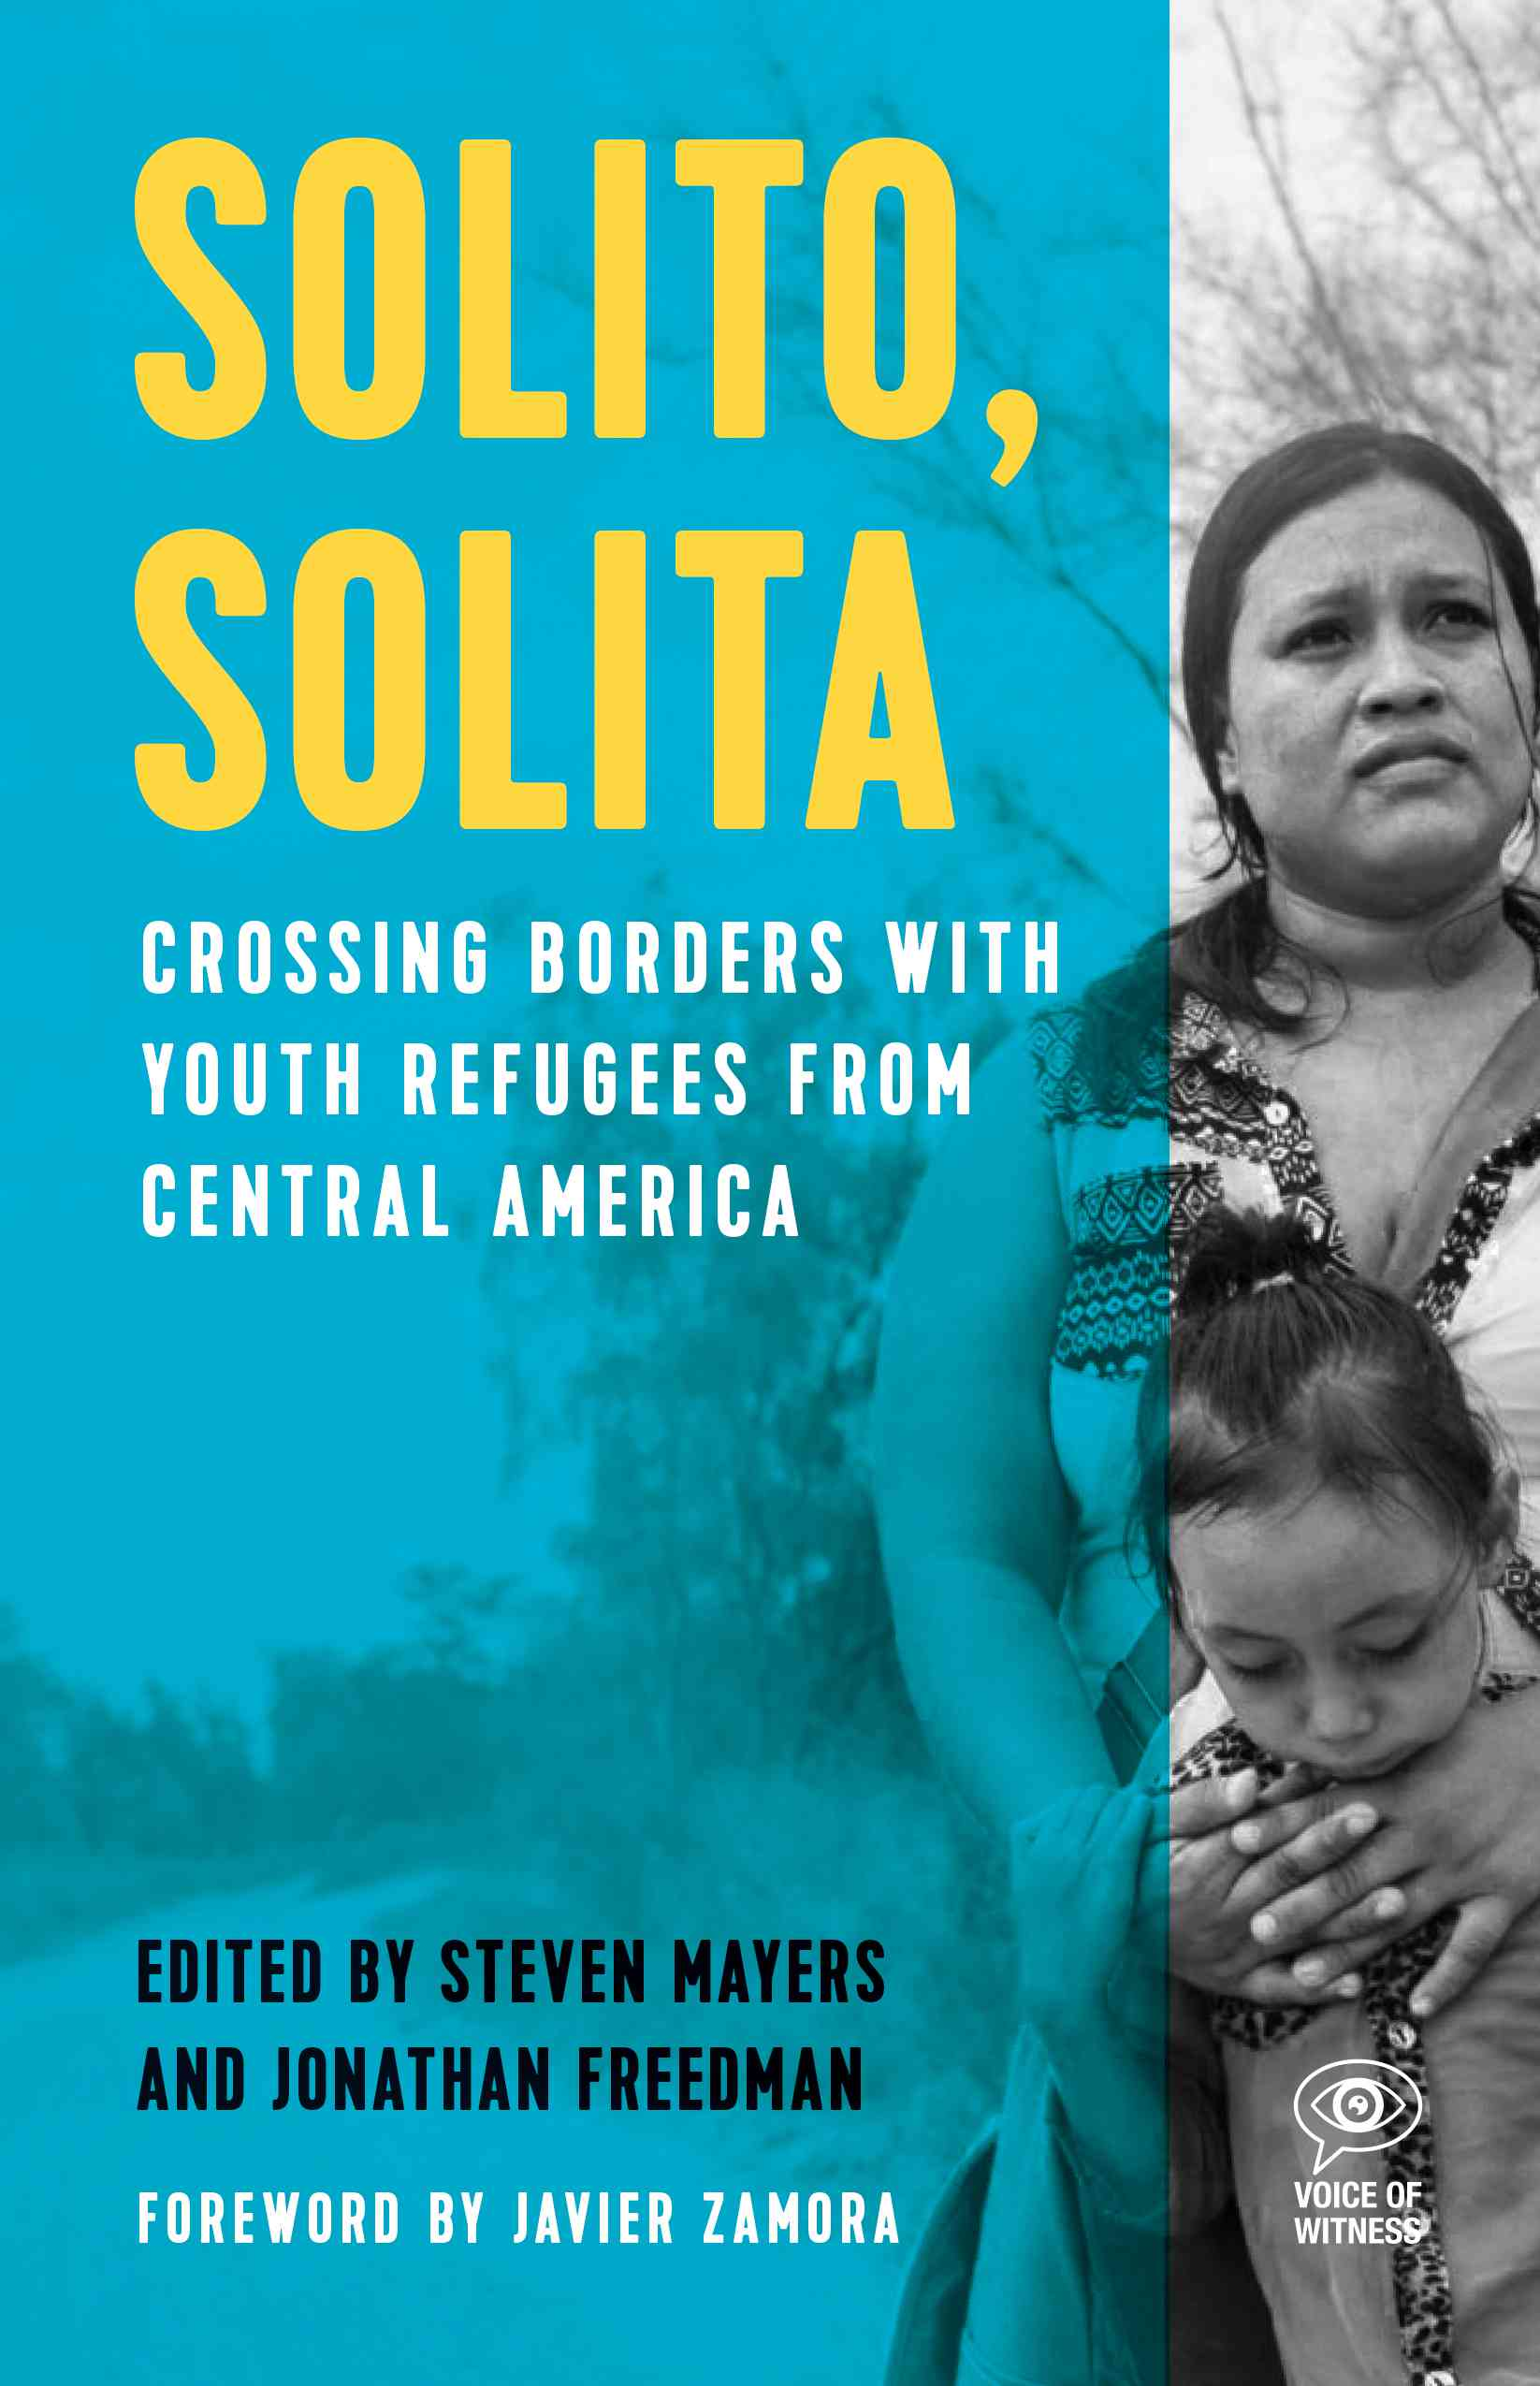 A blue book cover featuring Central American refugees, entitled Solito, Solita.